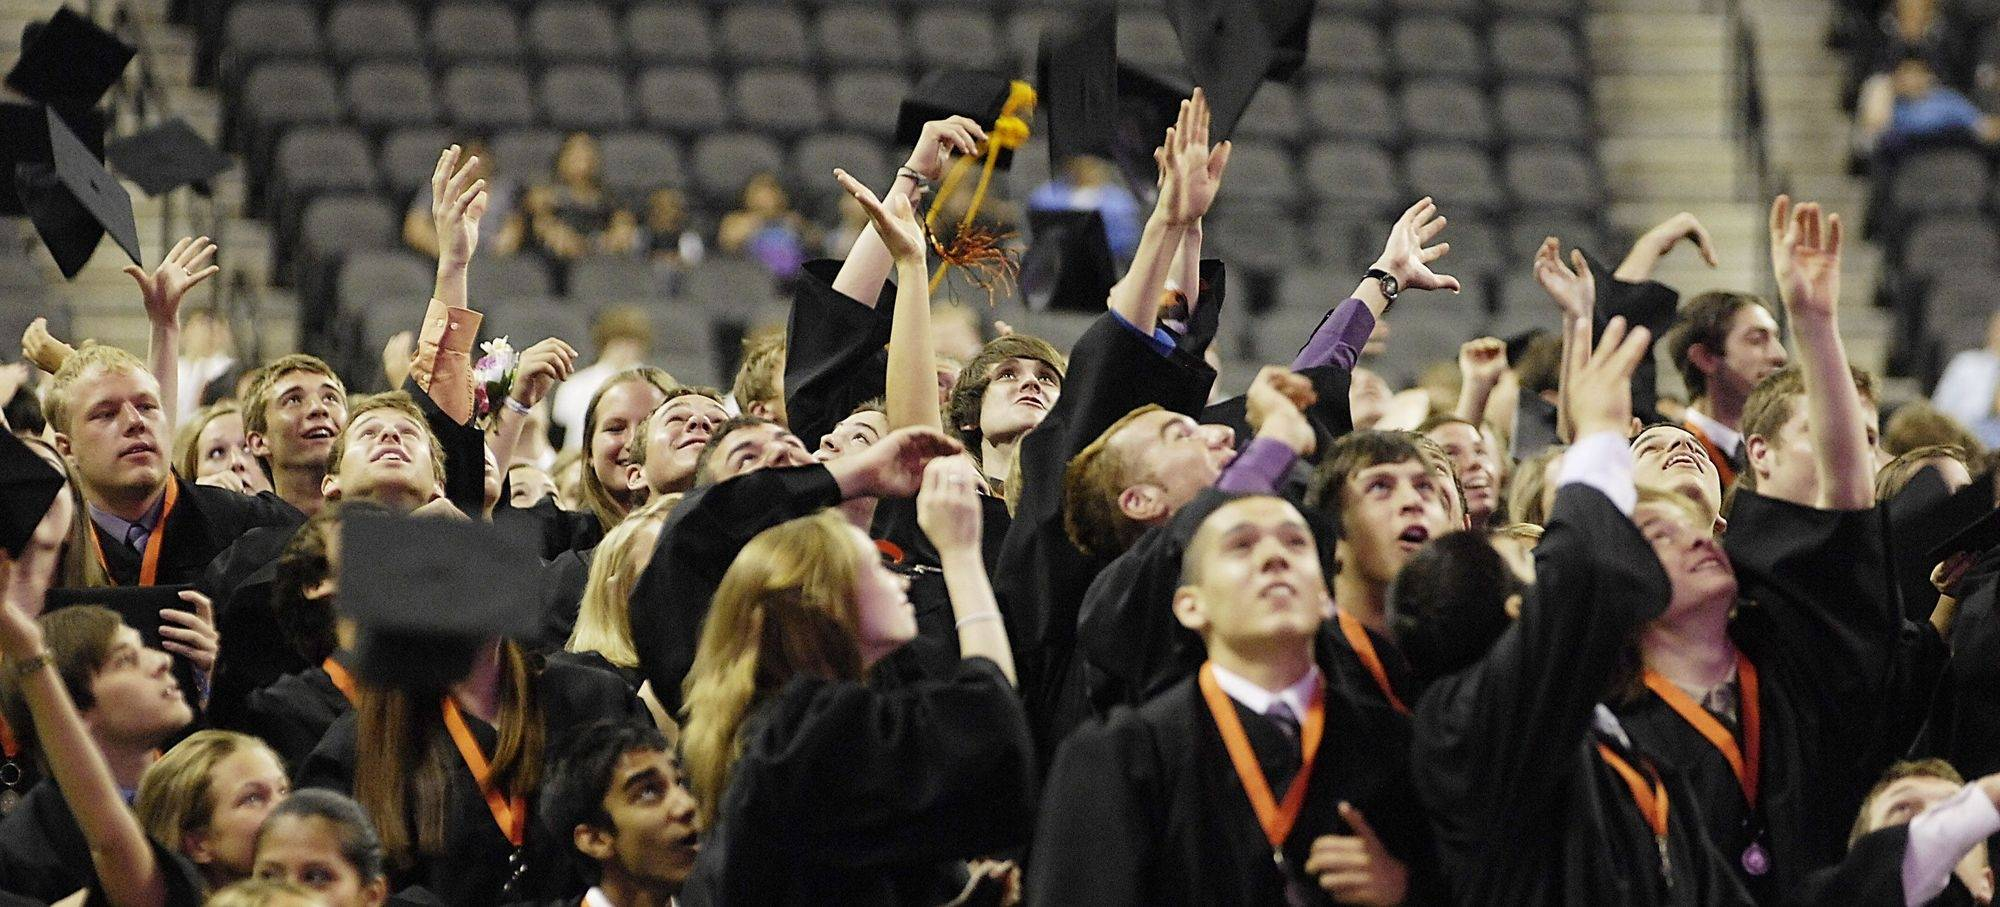 All eyes turn toward the lights as St. Charles East High School 2010 graduates toss their caps at the end of their graduation ceremony Sunday.